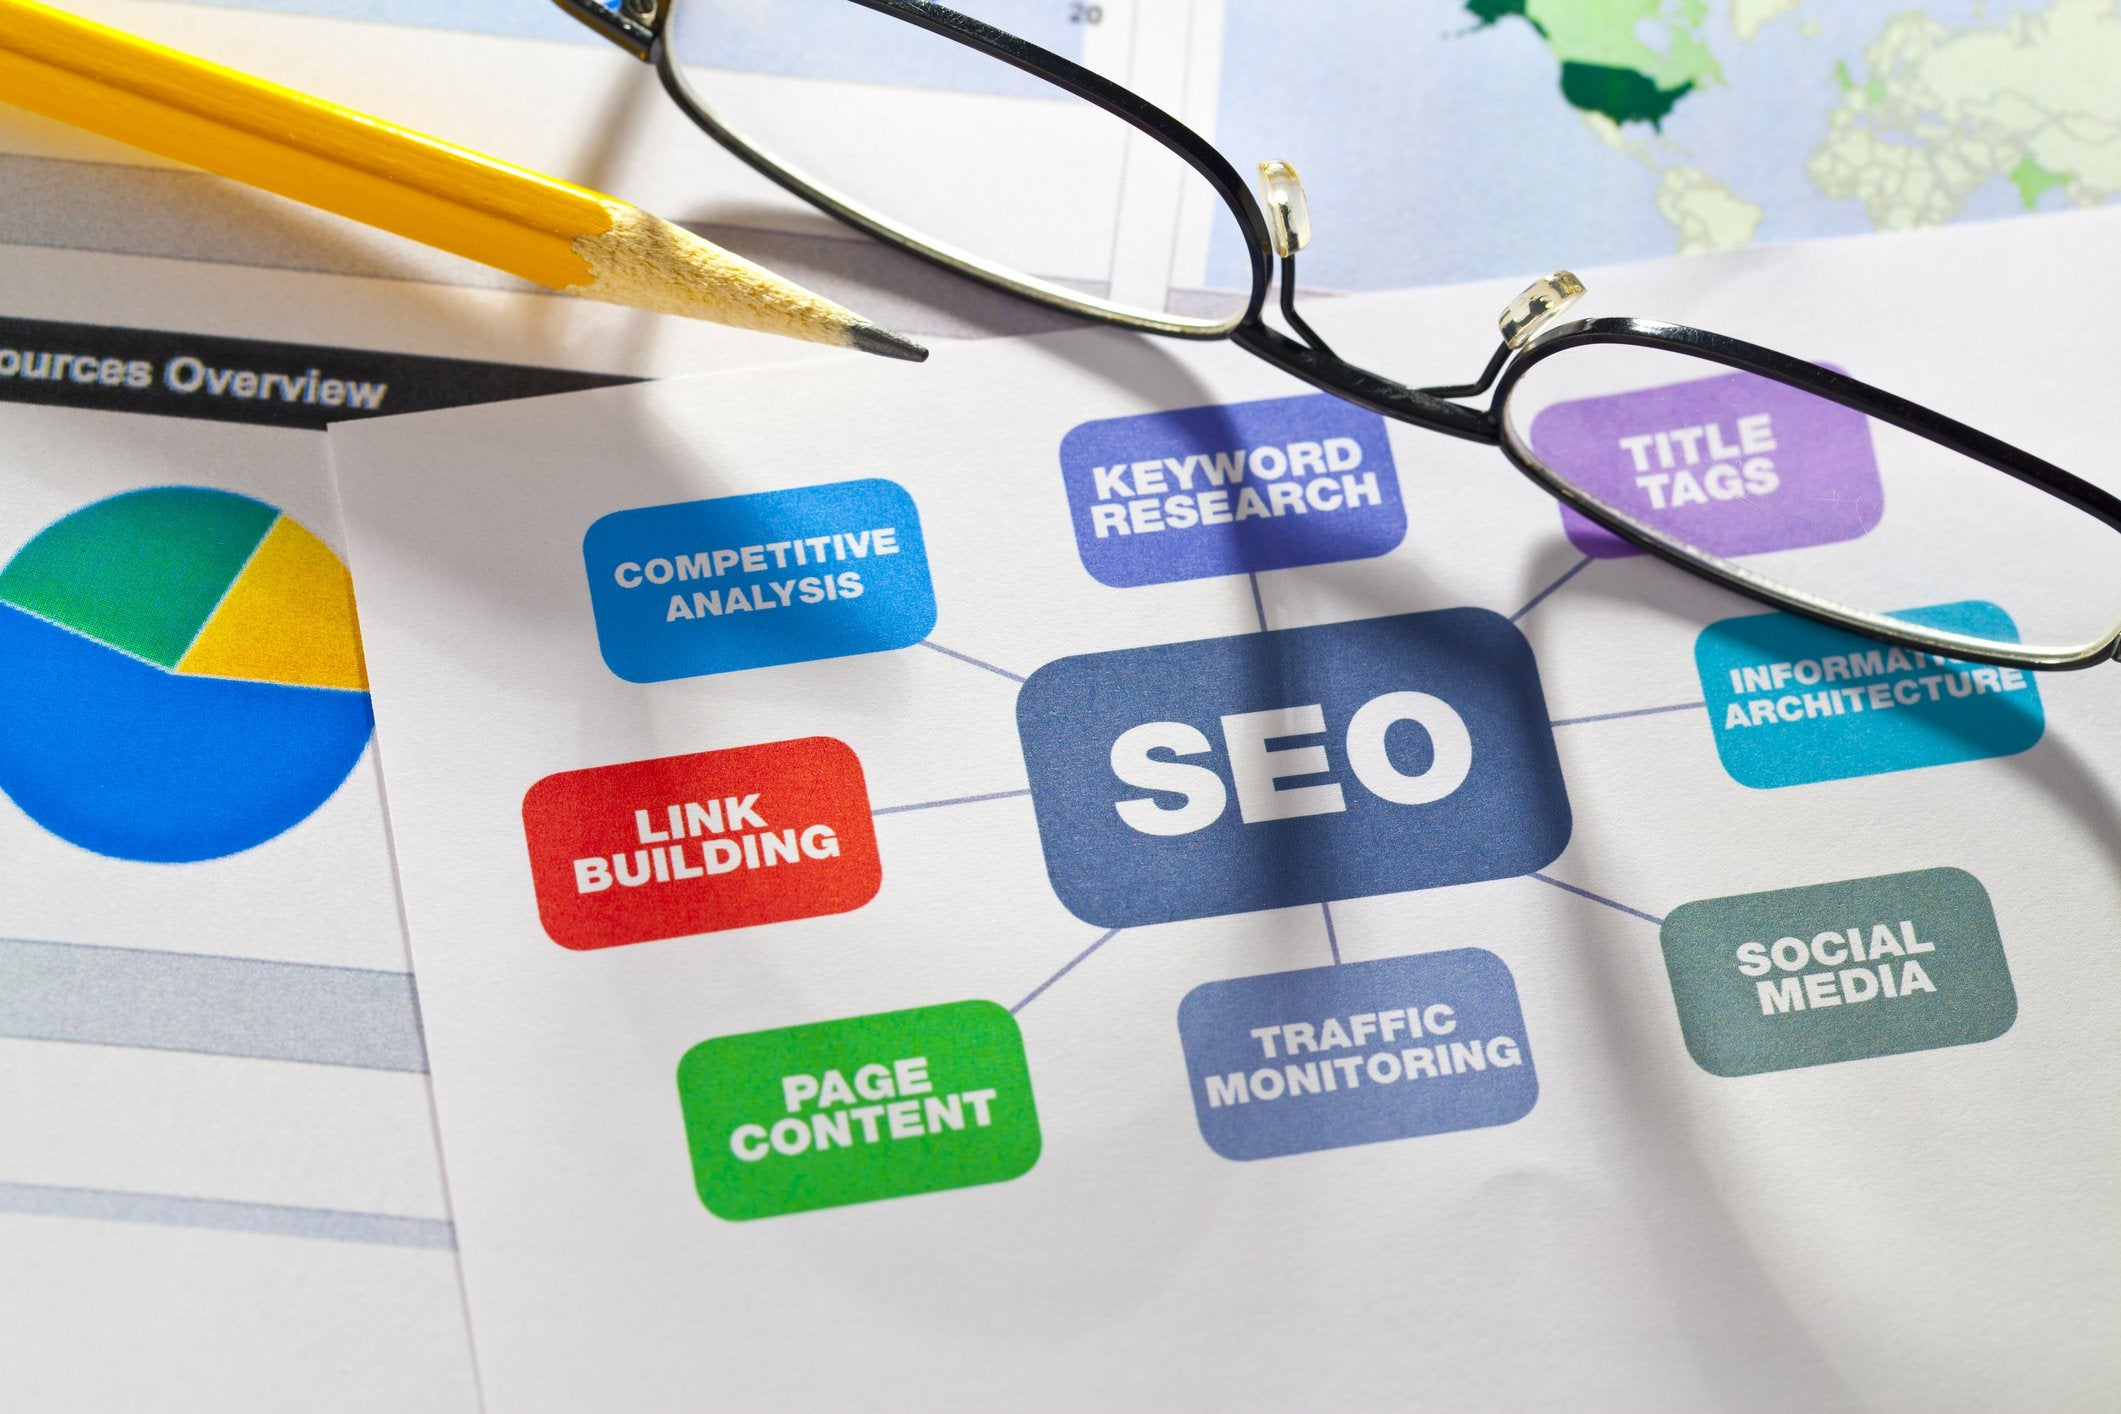 7 Ways to Improve SEO Visibility for Your Business